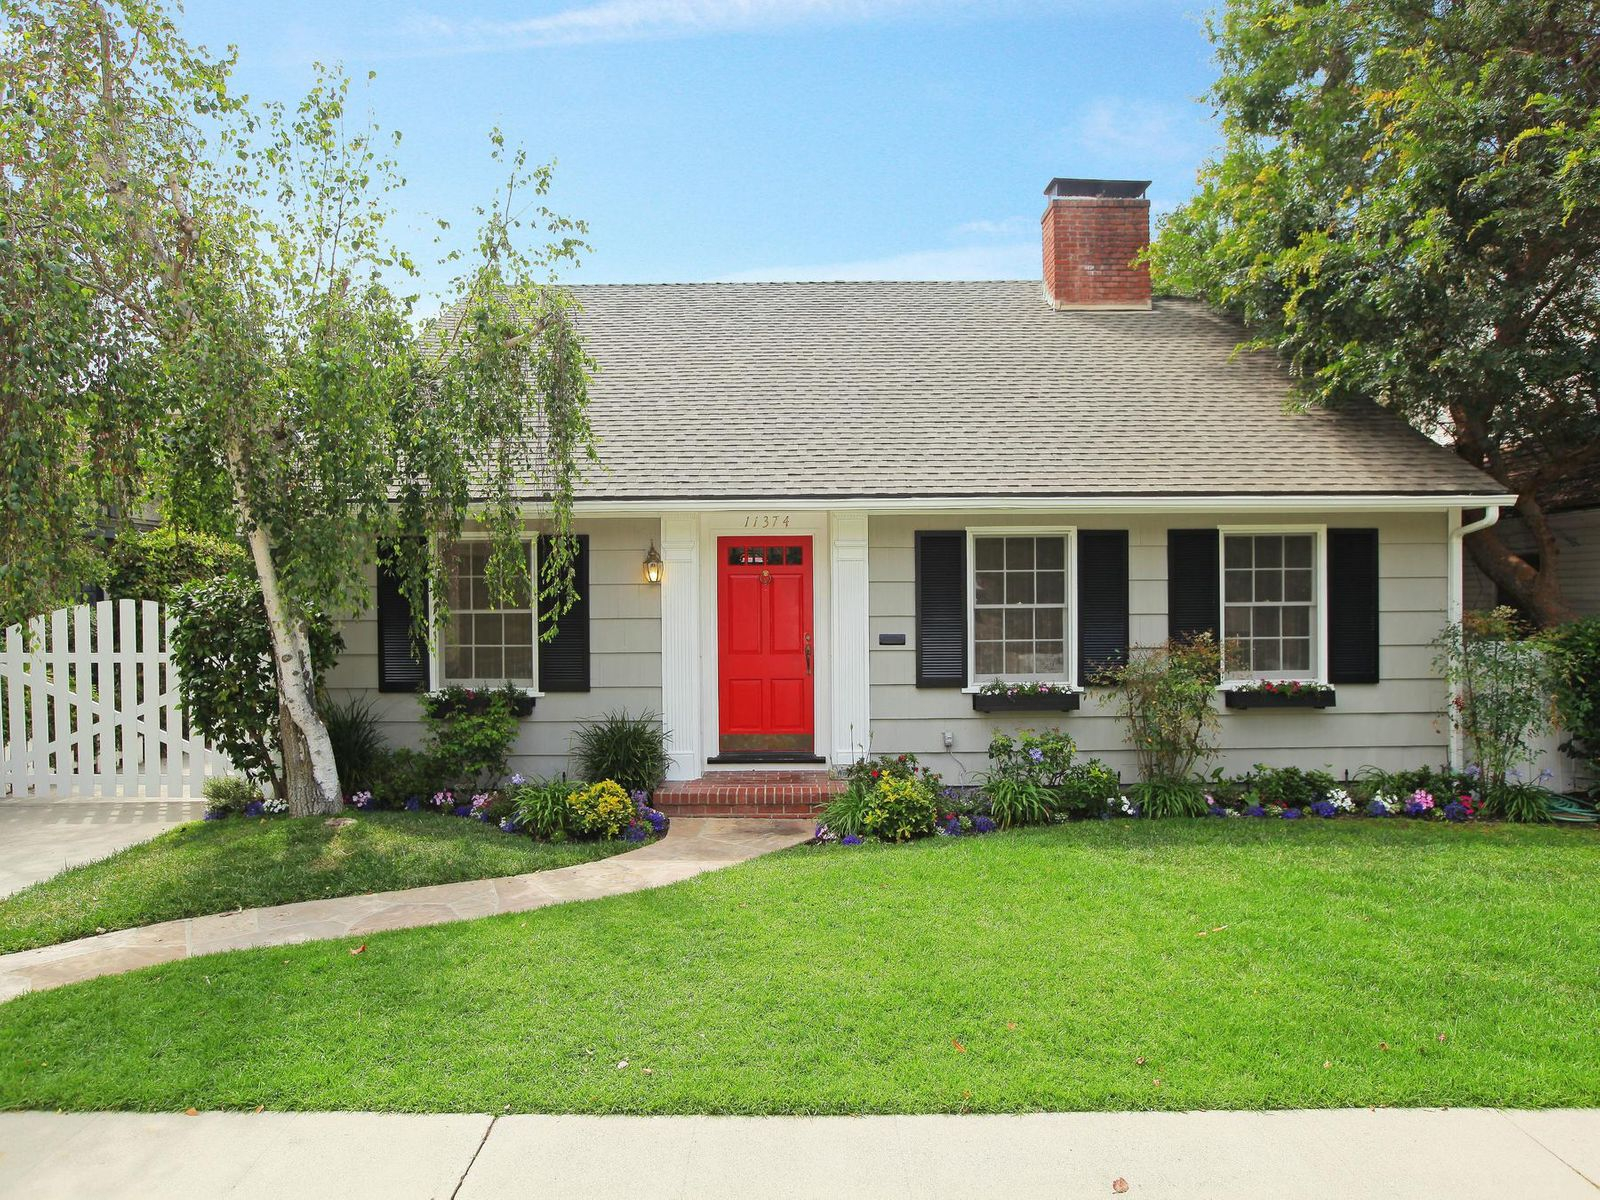 11374 Homedale Street, Los Angeles CA Single Family Home - Los Angeles Real Estate